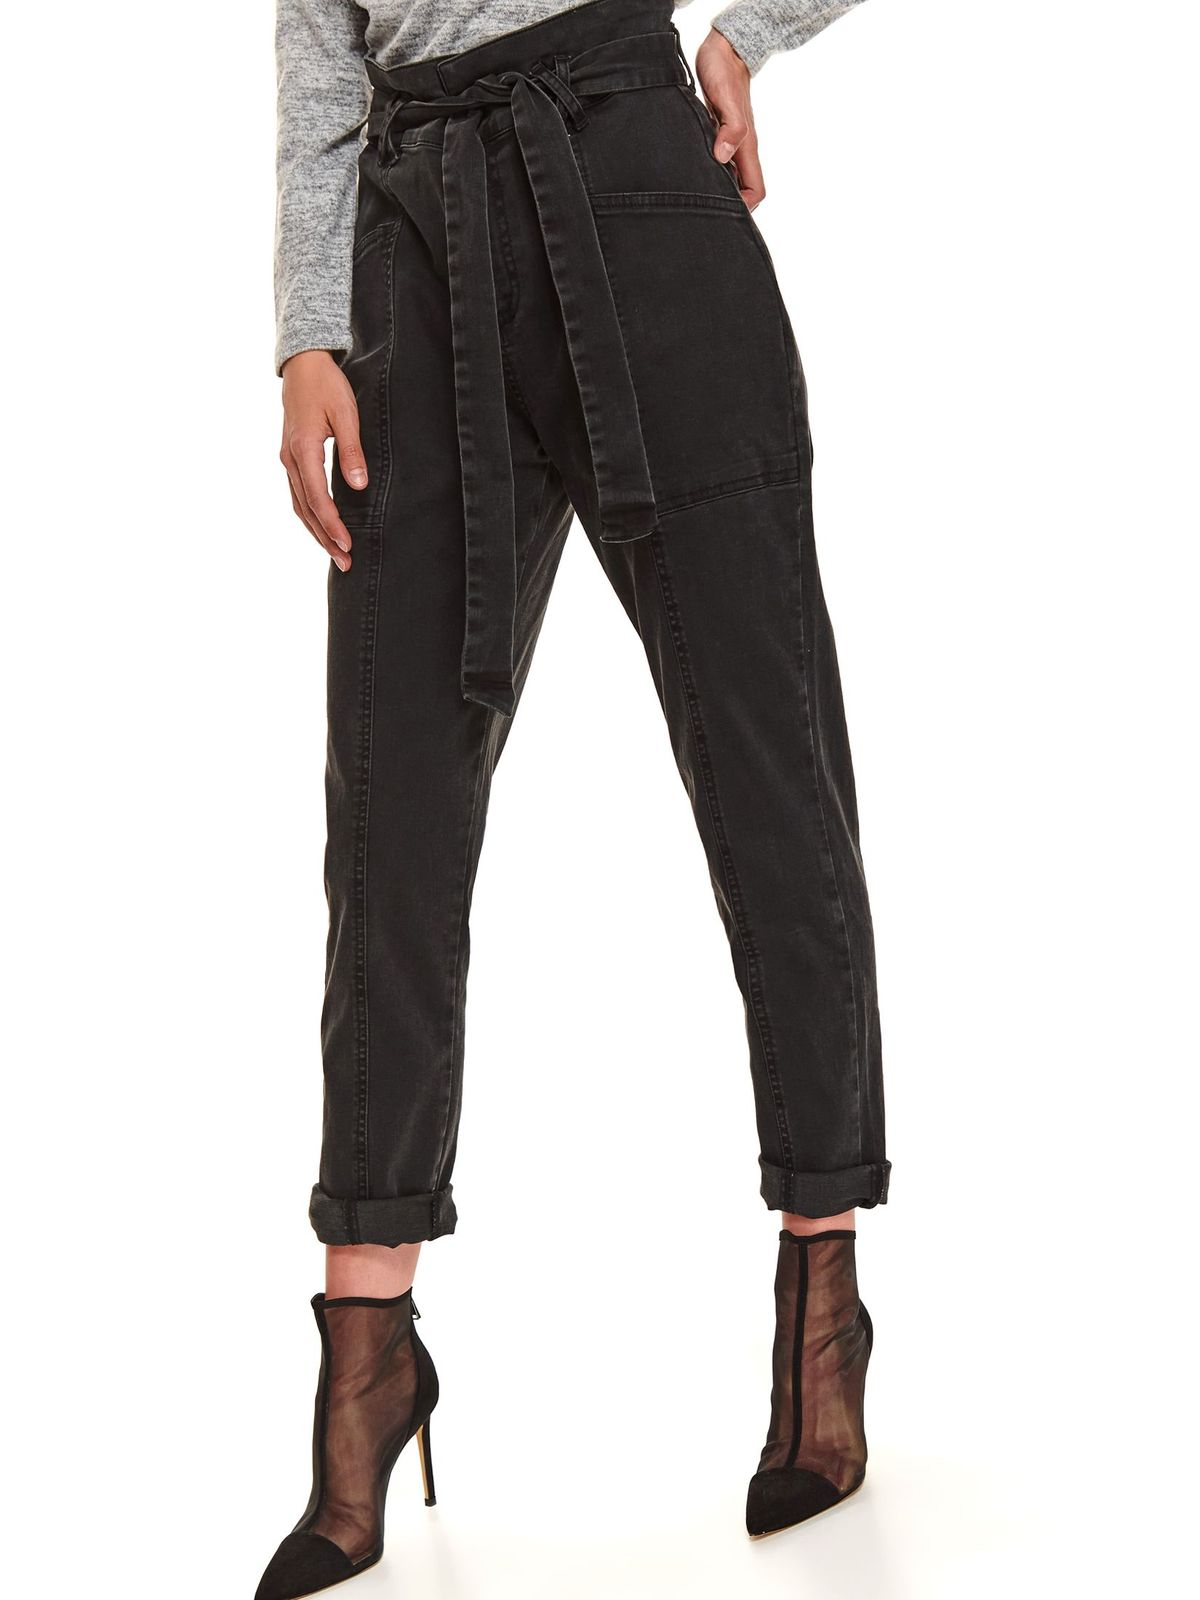 Darkgrey trousers casual with pockets denim high waisted